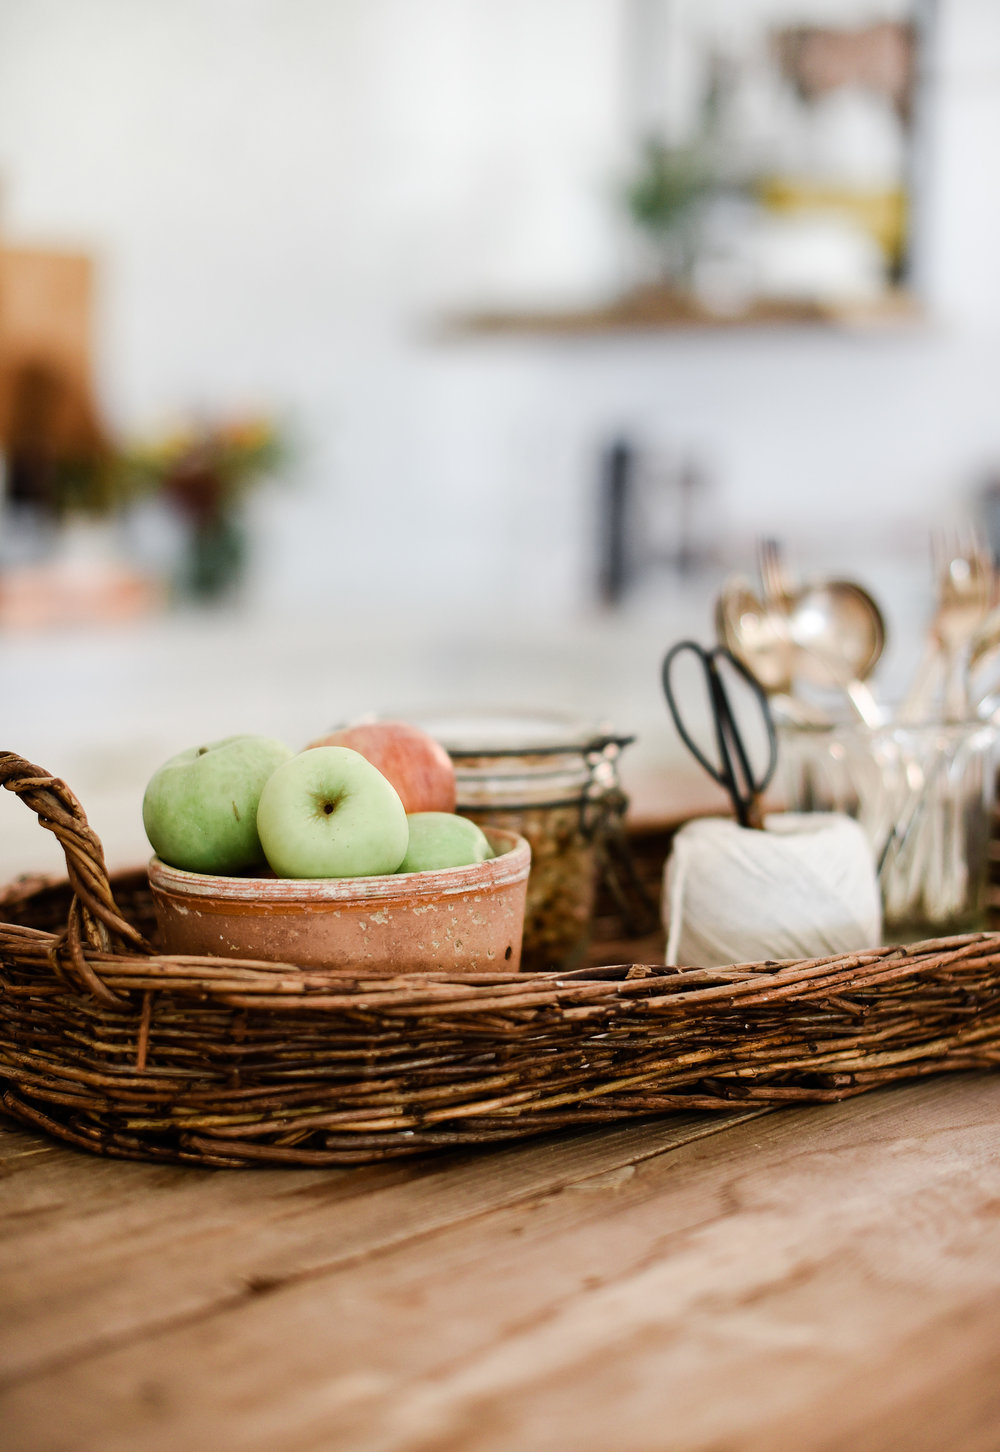 Shop your home. - Find new uses for old things. I typically keep a candle in this vintage cheese mold, but reused it to hold apples as a centerpiece on my island. What do you have in your home that could be repurposed?